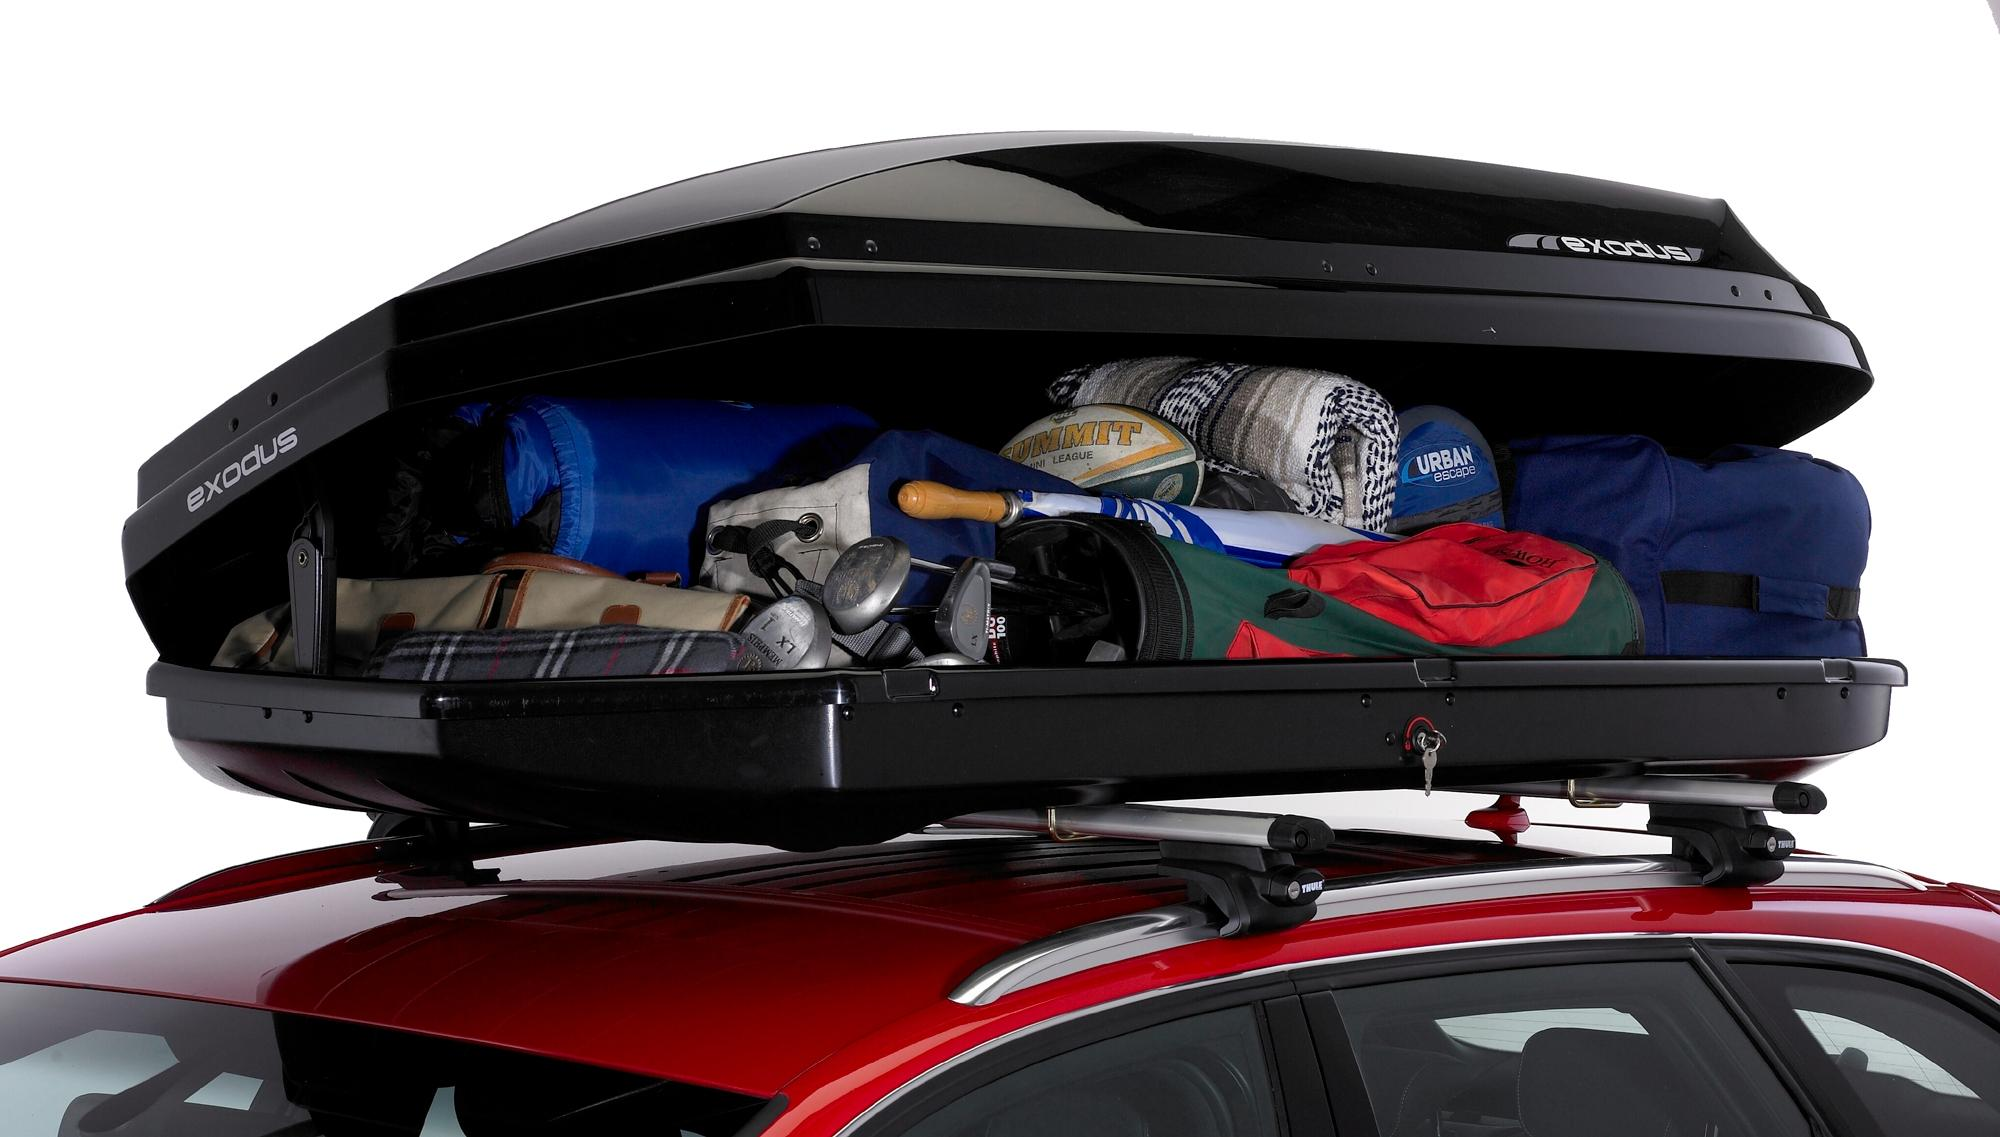 roof box thule go pack roof bags inside a thule roof box. Black Bedroom Furniture Sets. Home Design Ideas